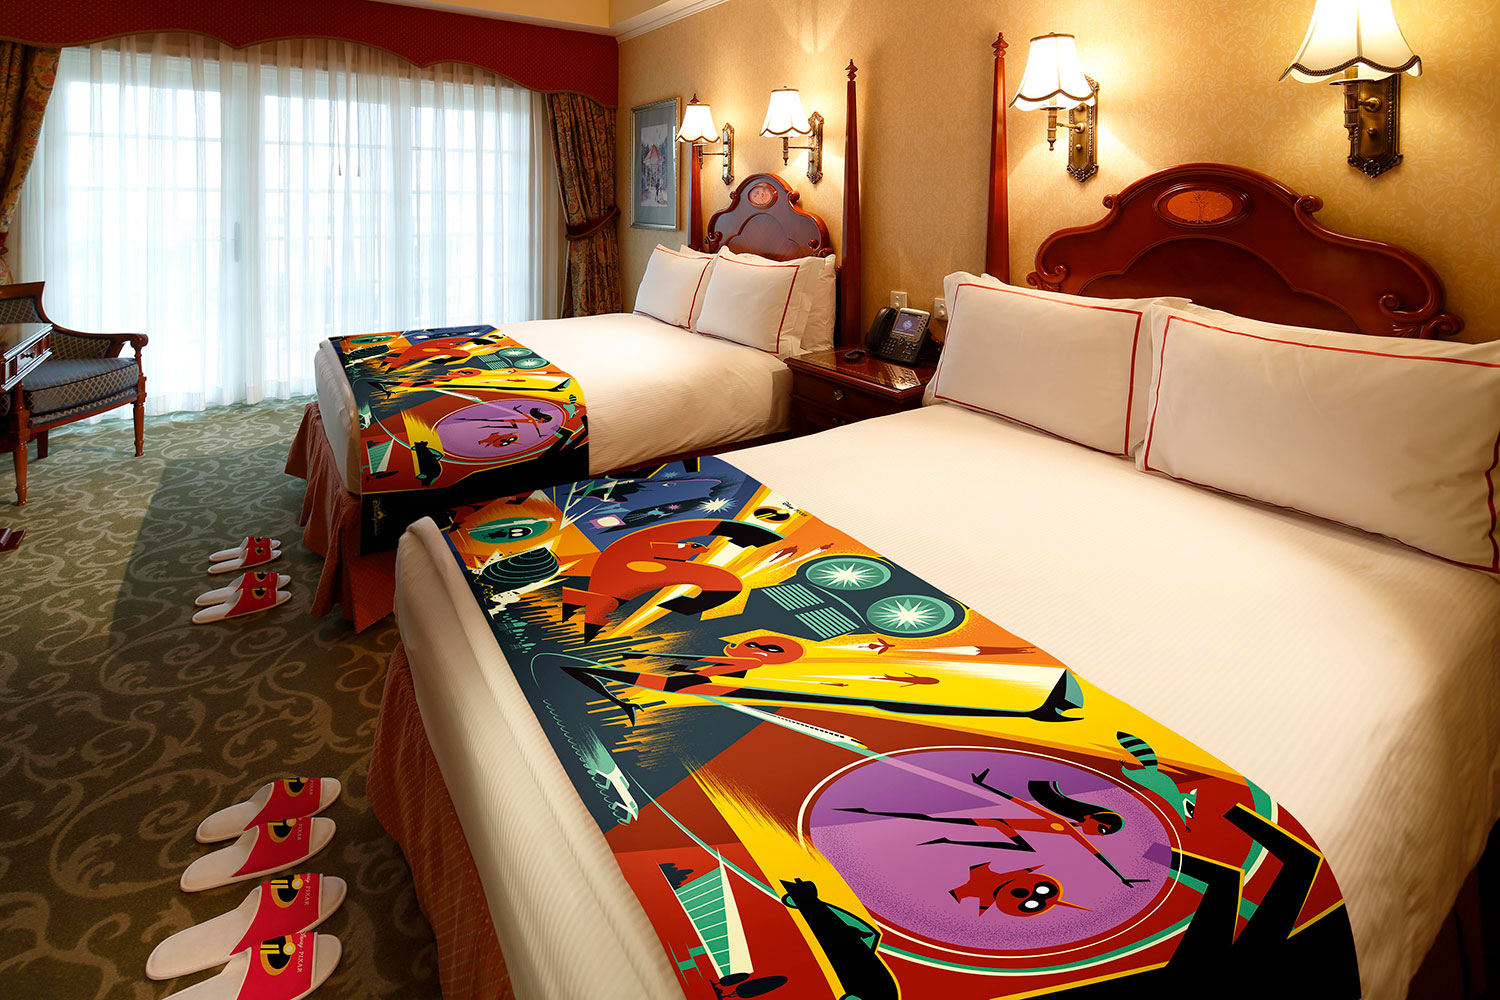 How To Get A Free Room Upgrade At Disney